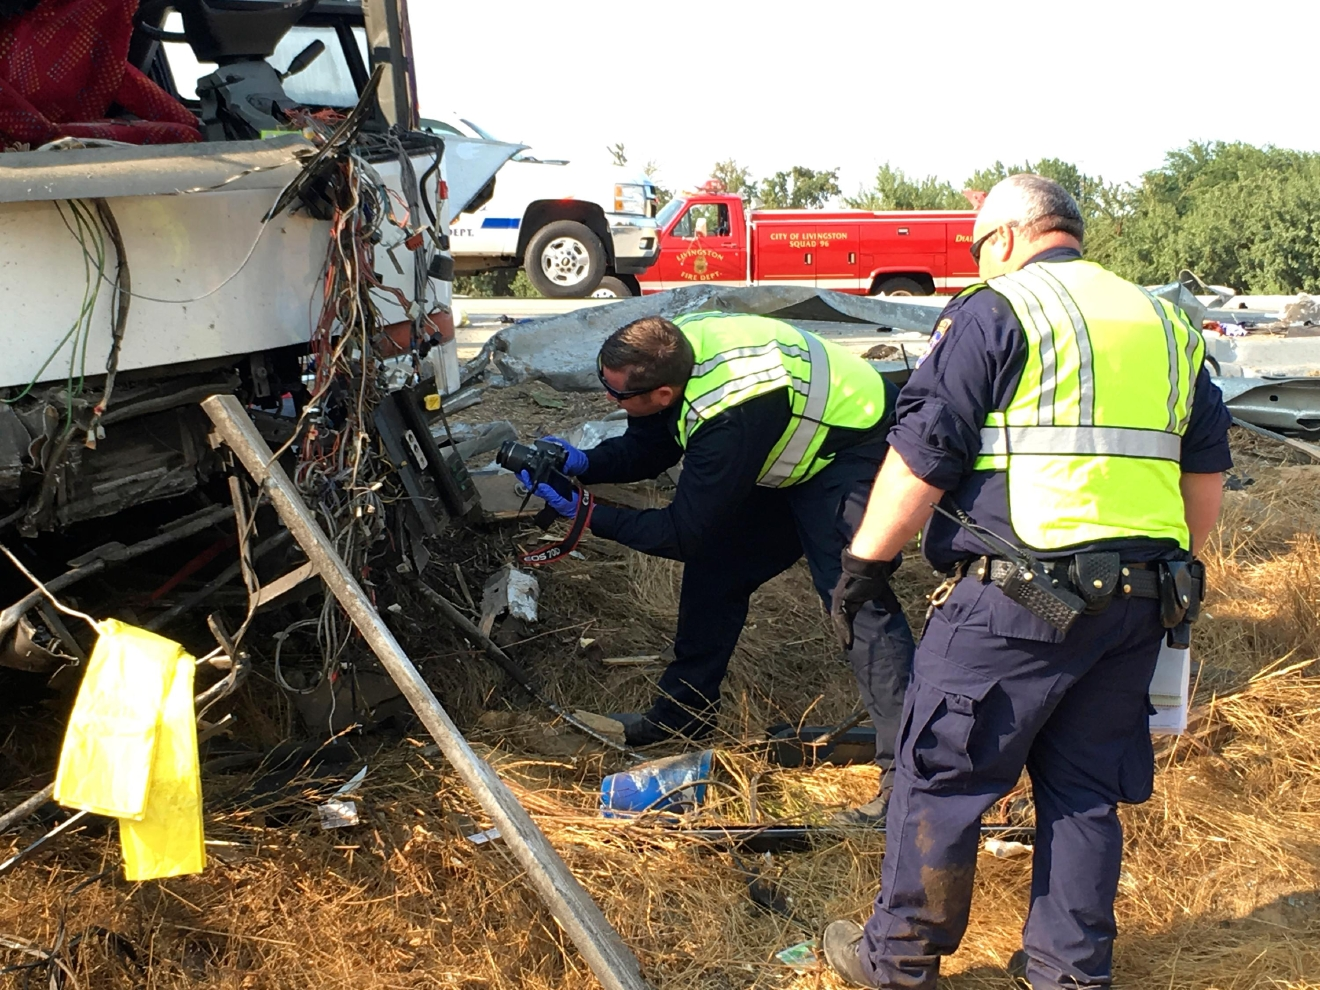 California Highway Patrol officers investigate the scene of a charter bus crash on northbound Highway 99 between Atwater and Livingston, Calif., Tuesday, Aug. 2, 2016. A charter bus veered off a central California freeway before dawn Tuesday and struck a pole that sliced the vehicle nearly in half, killing multiple people and sending at least five others to hospitals, authorities said. (AP Photo/Scott Smith)